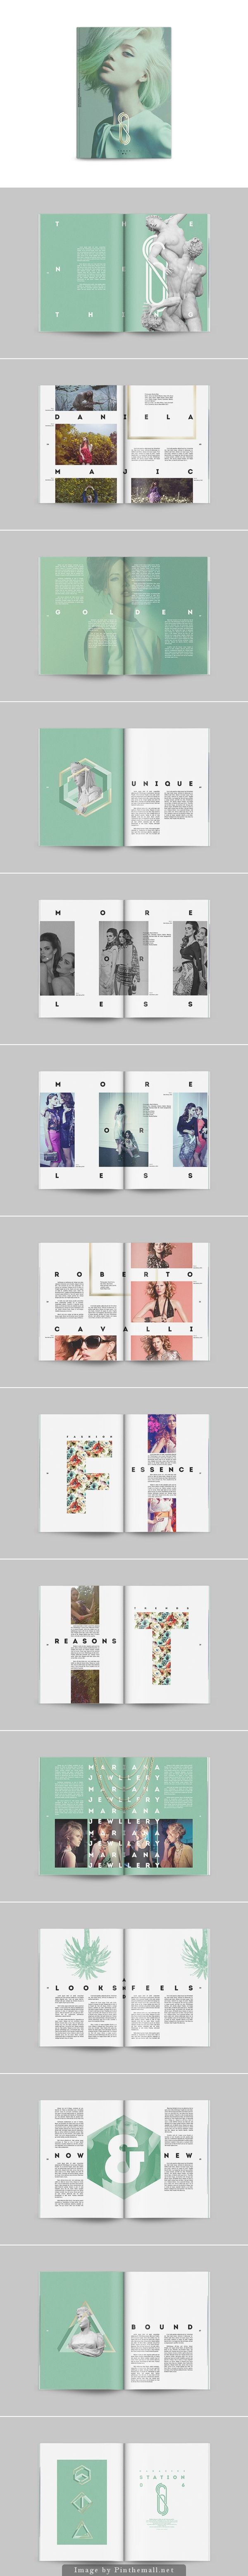 I like how the color scheme is constant throughout all the spreads and how the…